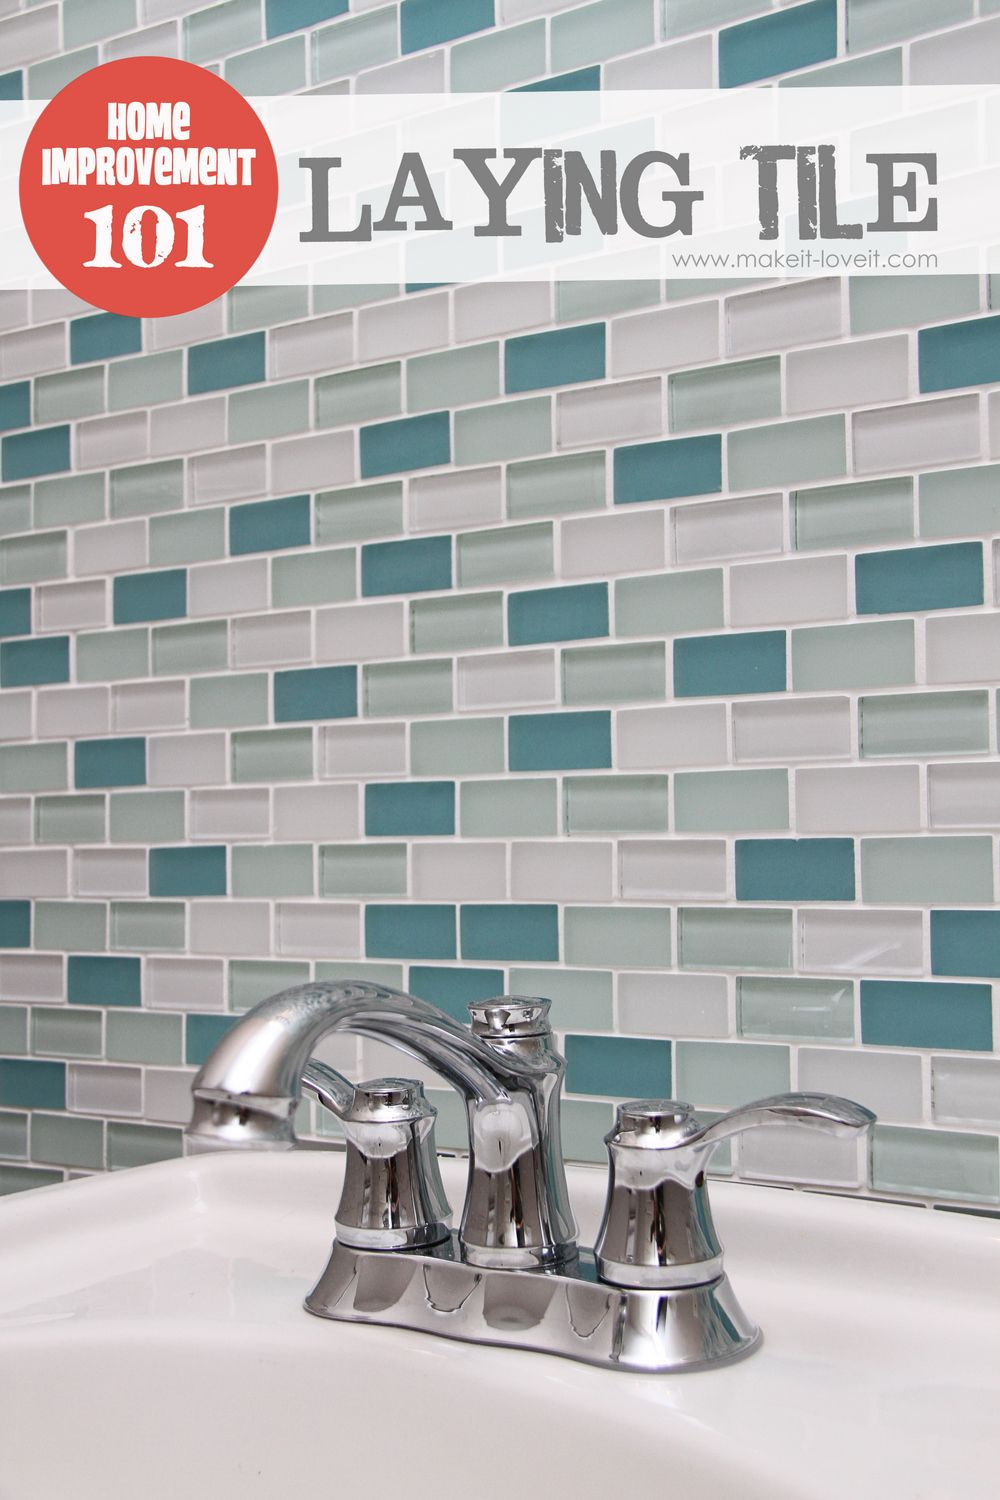 Love The Tile! Home Improvement: Laying Tile (on A Fireplace, Walls, Or  Backsplash)